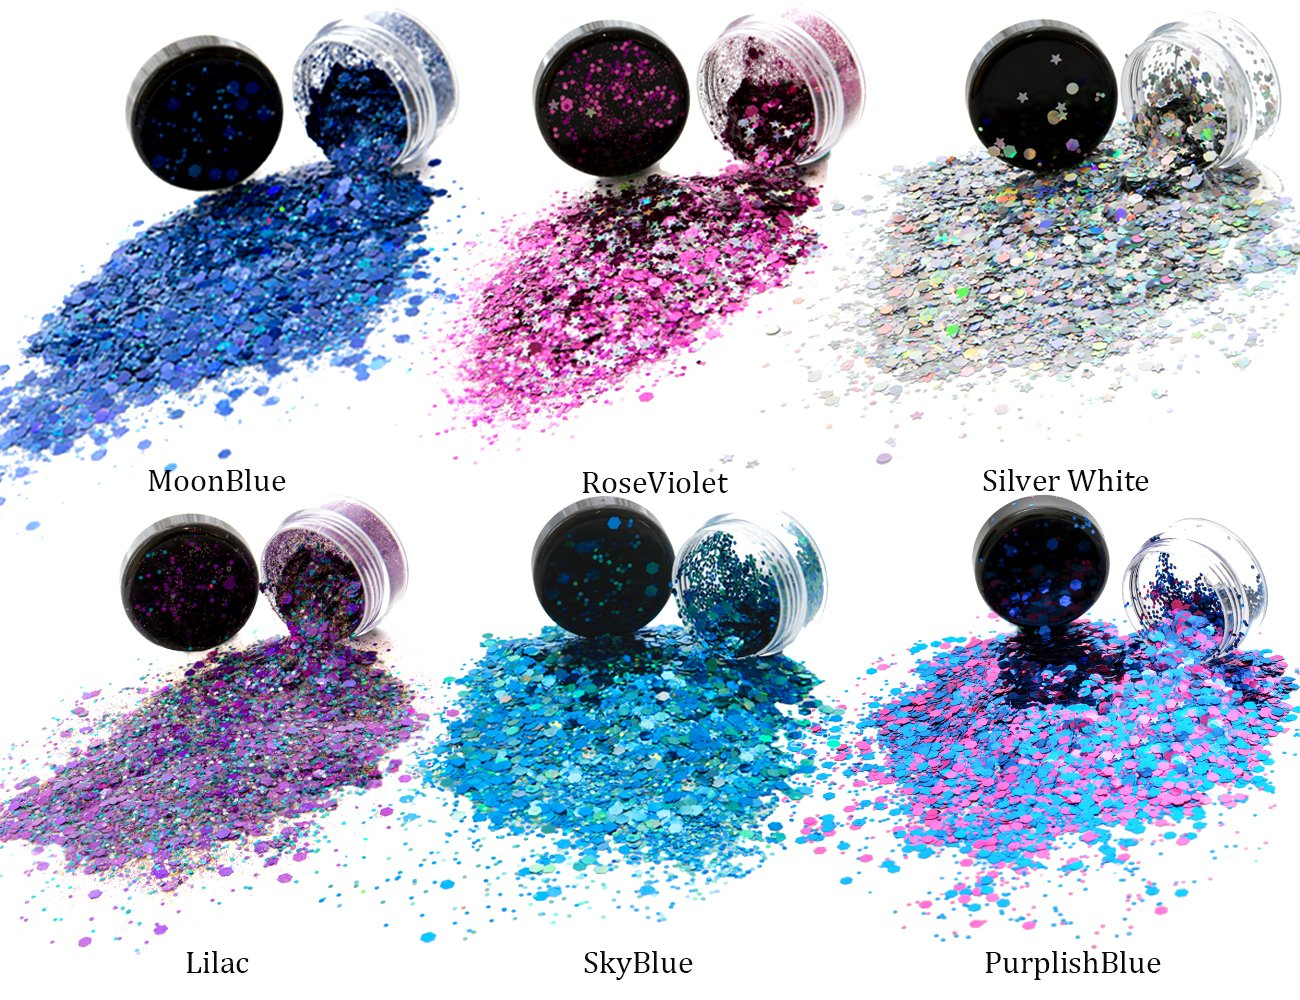 HITOP Colorful Cosmetic Chunky Glitter Festival Beauty Makeup Decoration for Body Face Nail Hair Eyes or Lips &DIY Crafts- Includes Long Lasting Free Fix Primer (6 Colors Set4) by HITOP (Image #2)